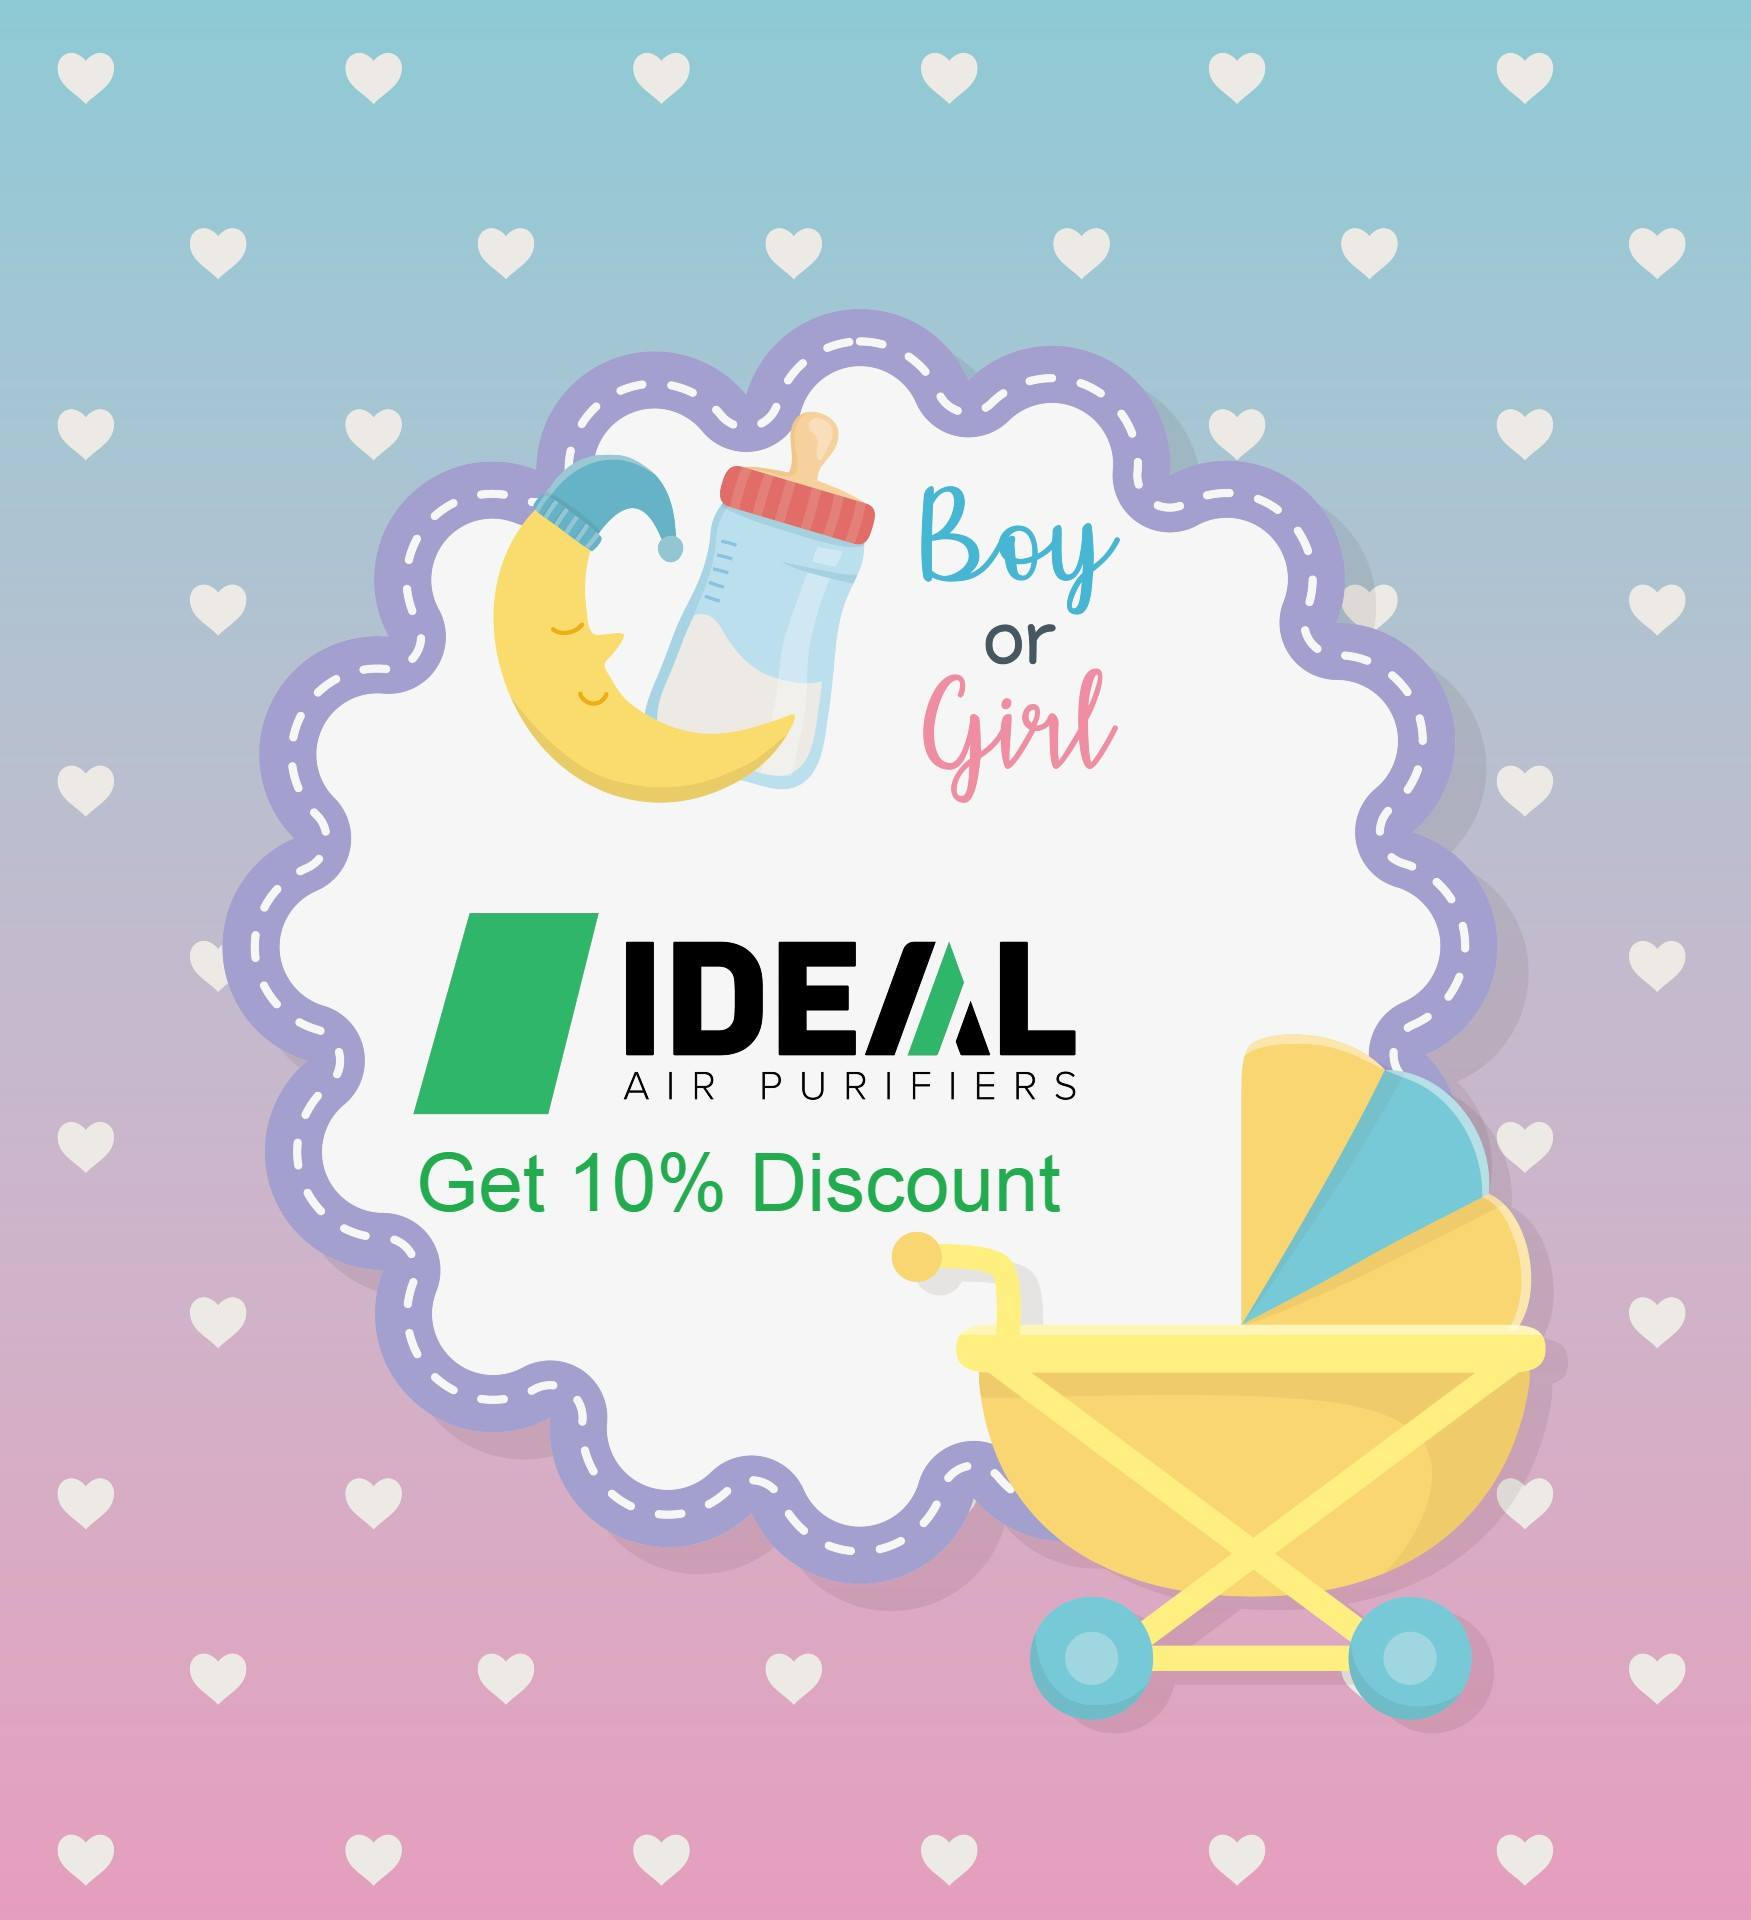 Special offer for newborn babies